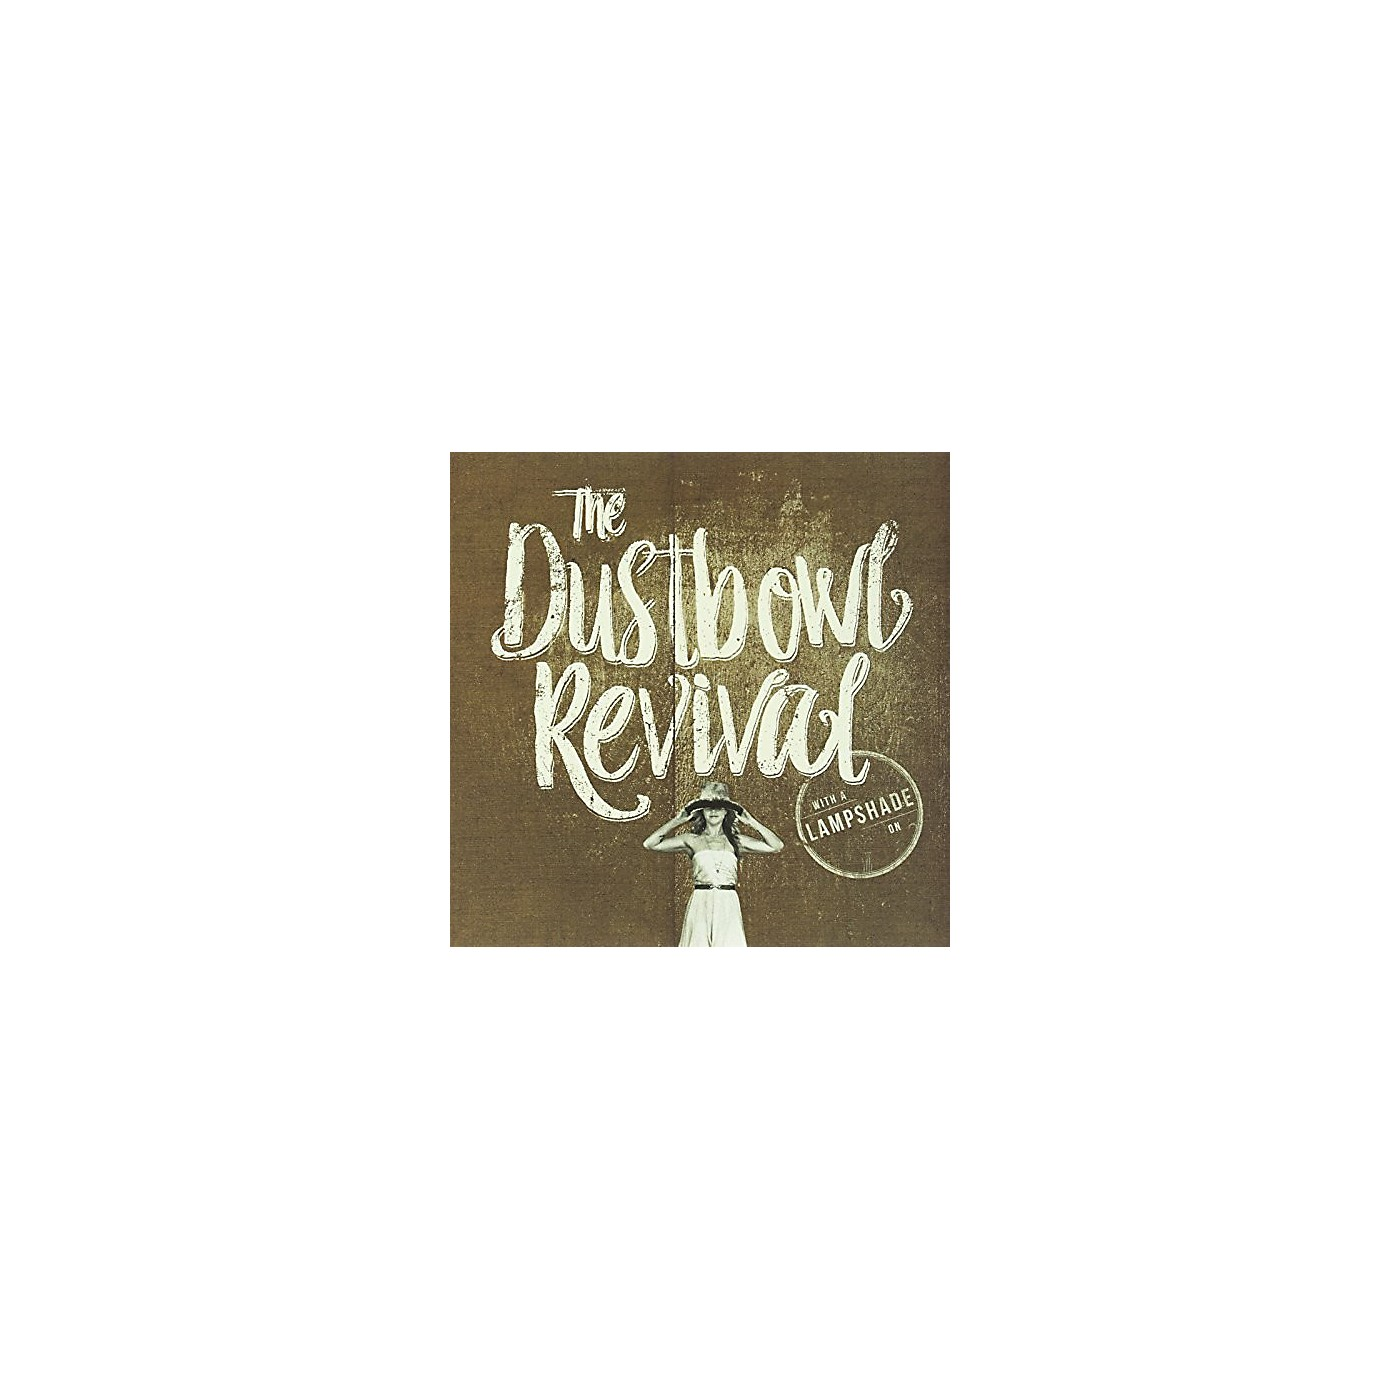 Alliance Dustbowl Revival - With a Lampshade on thumbnail